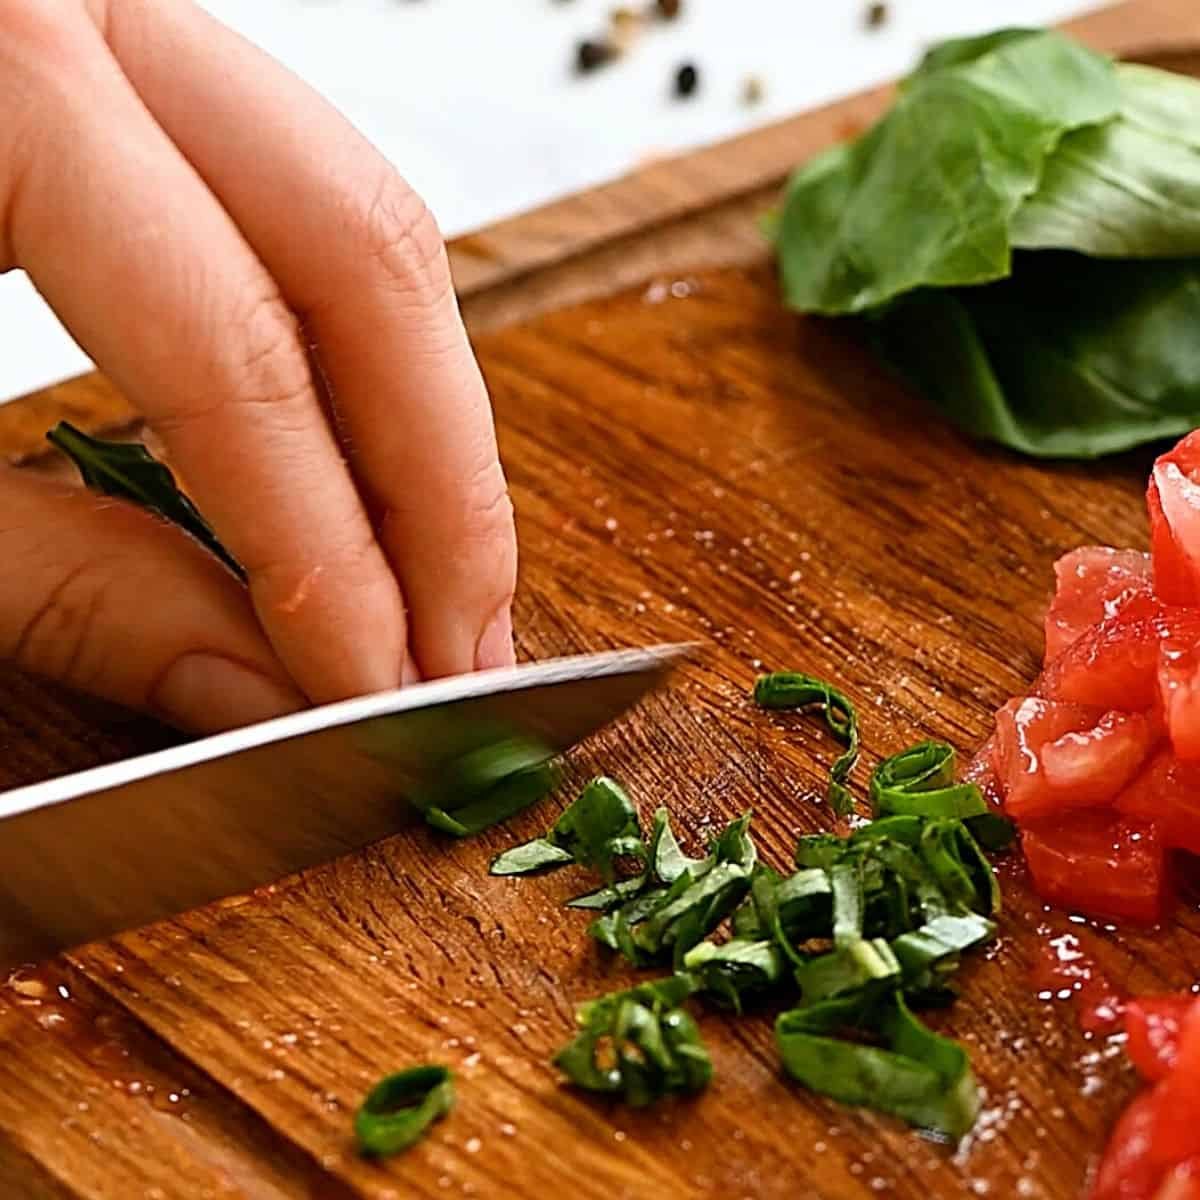 Slicing basil into ribbons on cutting board.